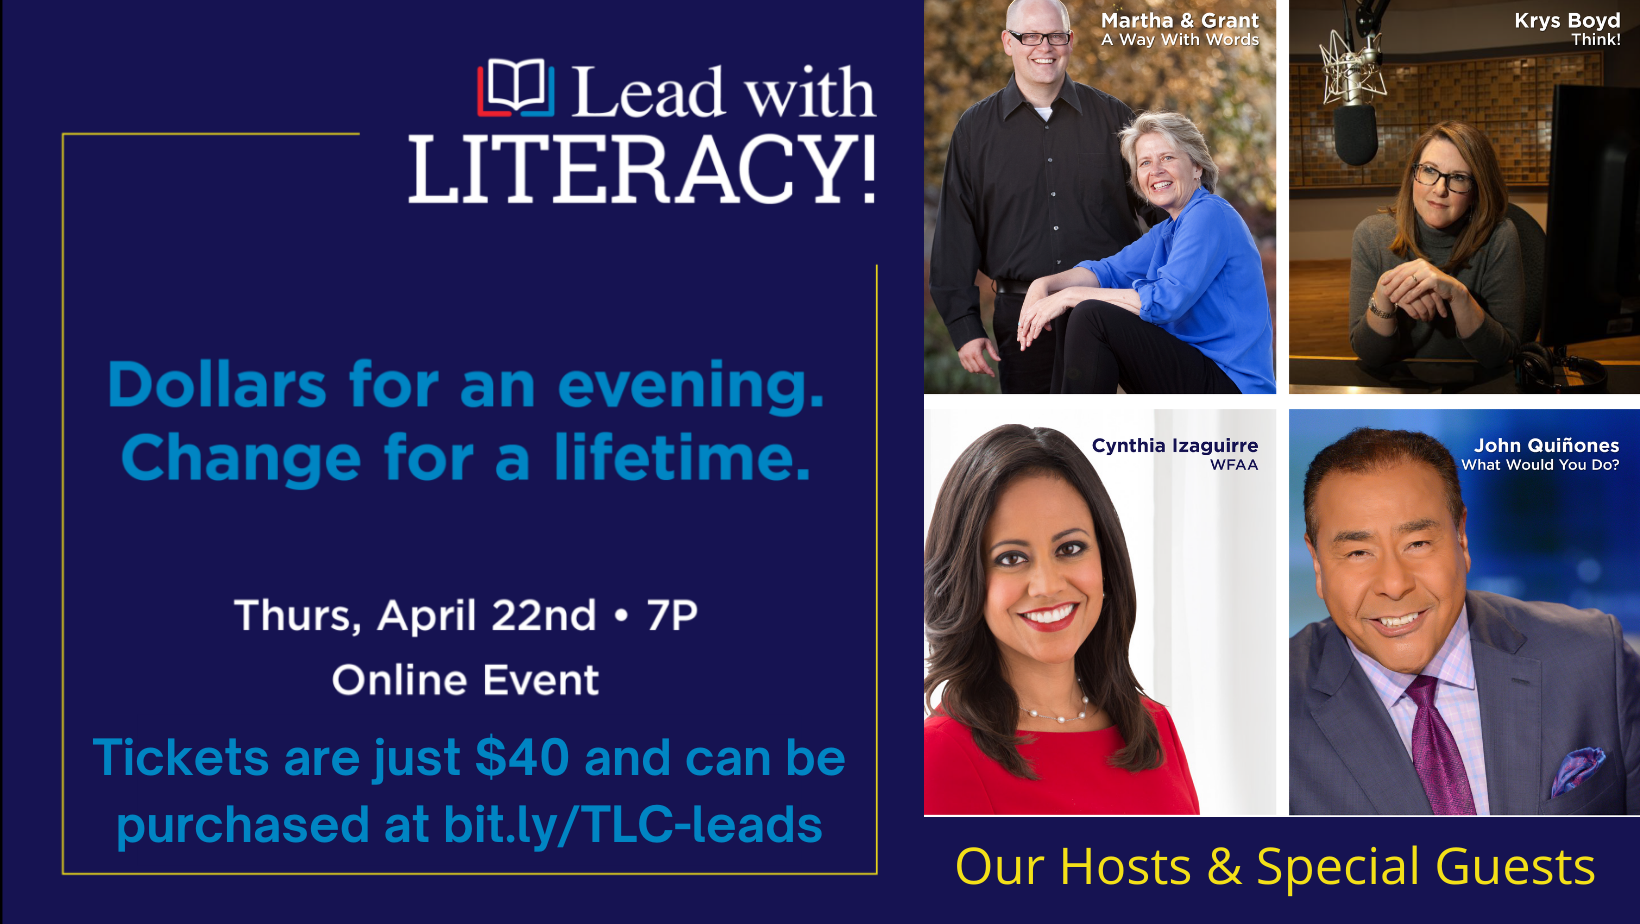 Lead with Literacy Virtual Event and Fundraiser: April 22 @ 7PM